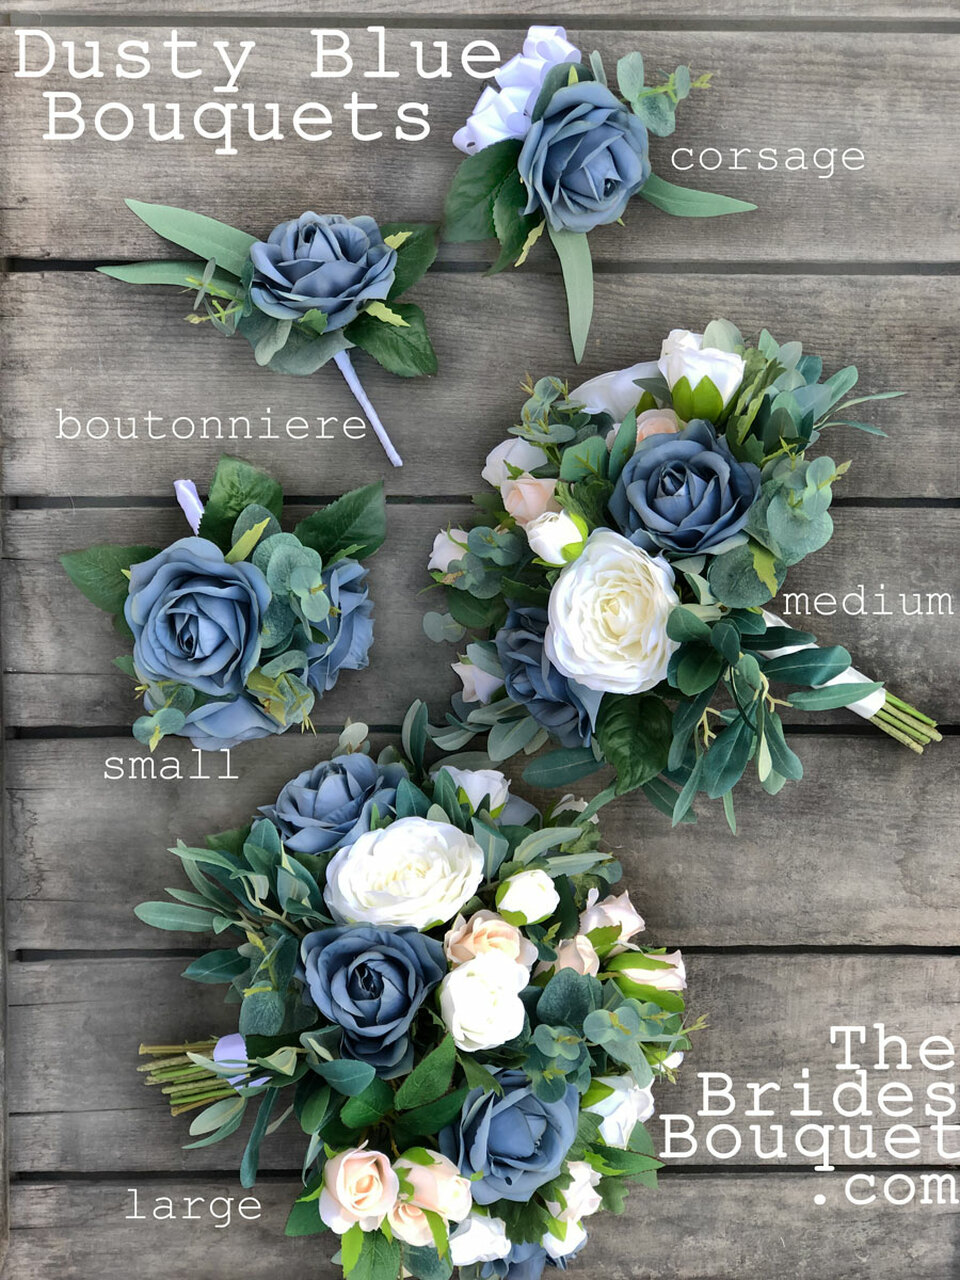 choose blue roses wedding bouquets for your wedding 1 - Choose Blue Roses Wedding Bouquets for Your Wedding